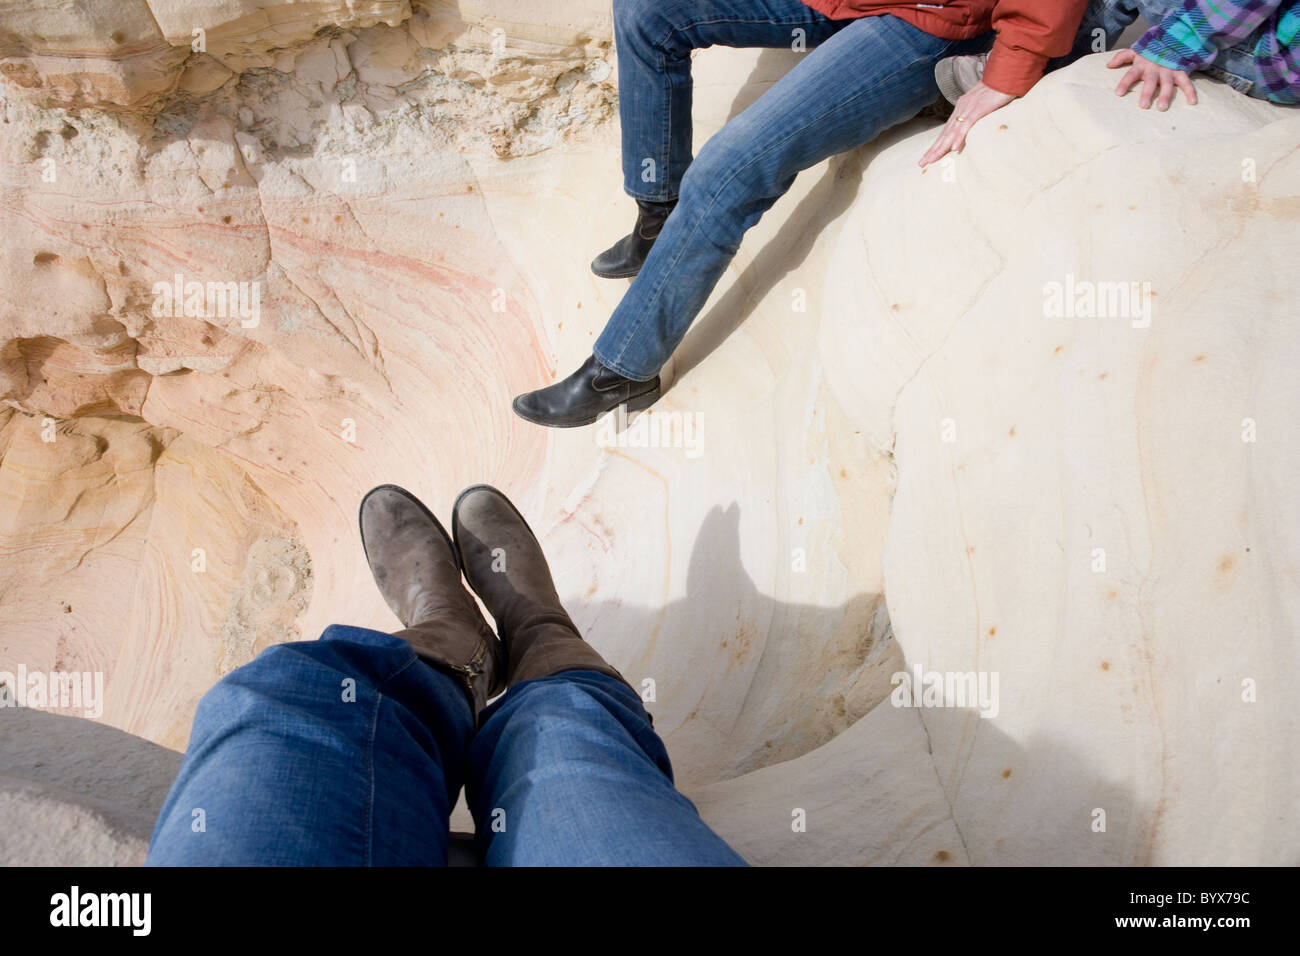 women wearing boots resting on sandstone, high desert of New Mexico, USA - Stock Image